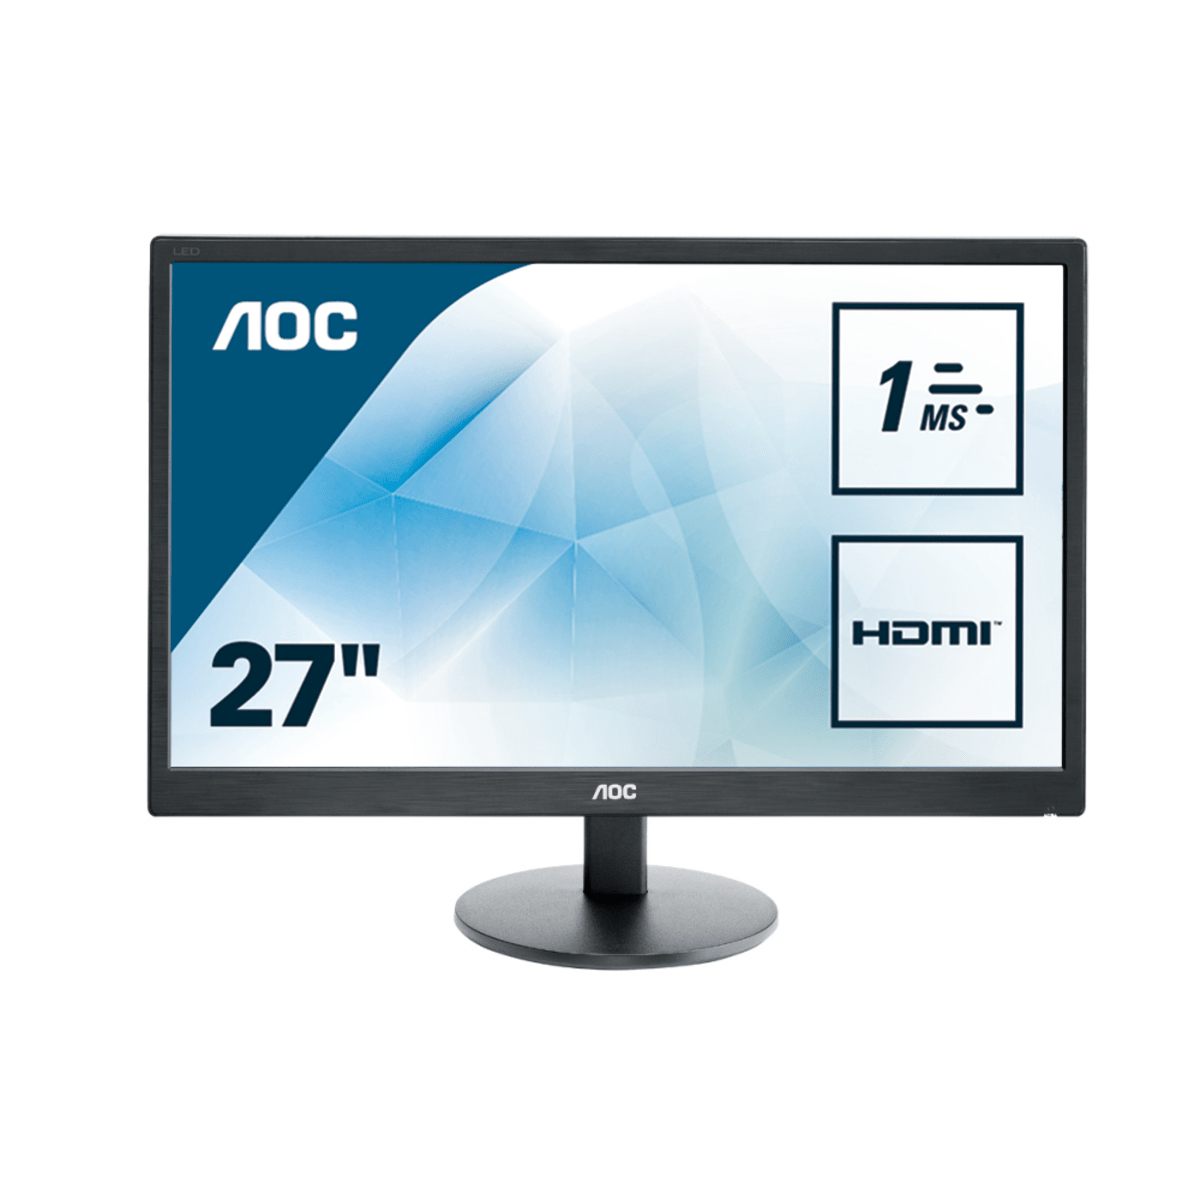 Desktop Monitor - E2770SH - 27in - 1920x1080 (Full HD) - 1ms